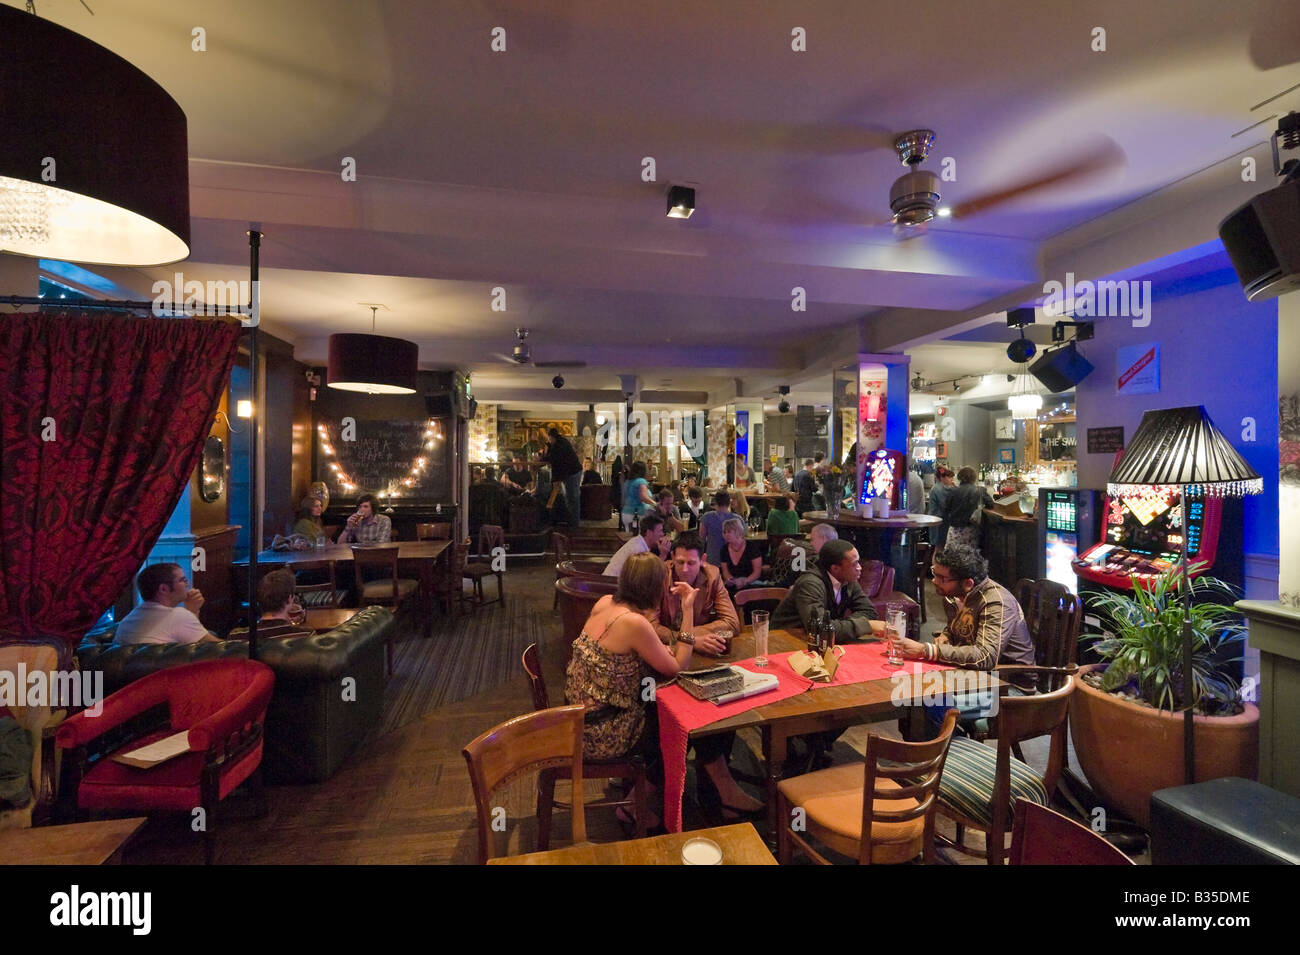 Pub in the city city centre on a Friday night, Briggate, Leeds, West Yorkshire, England - Stock Image